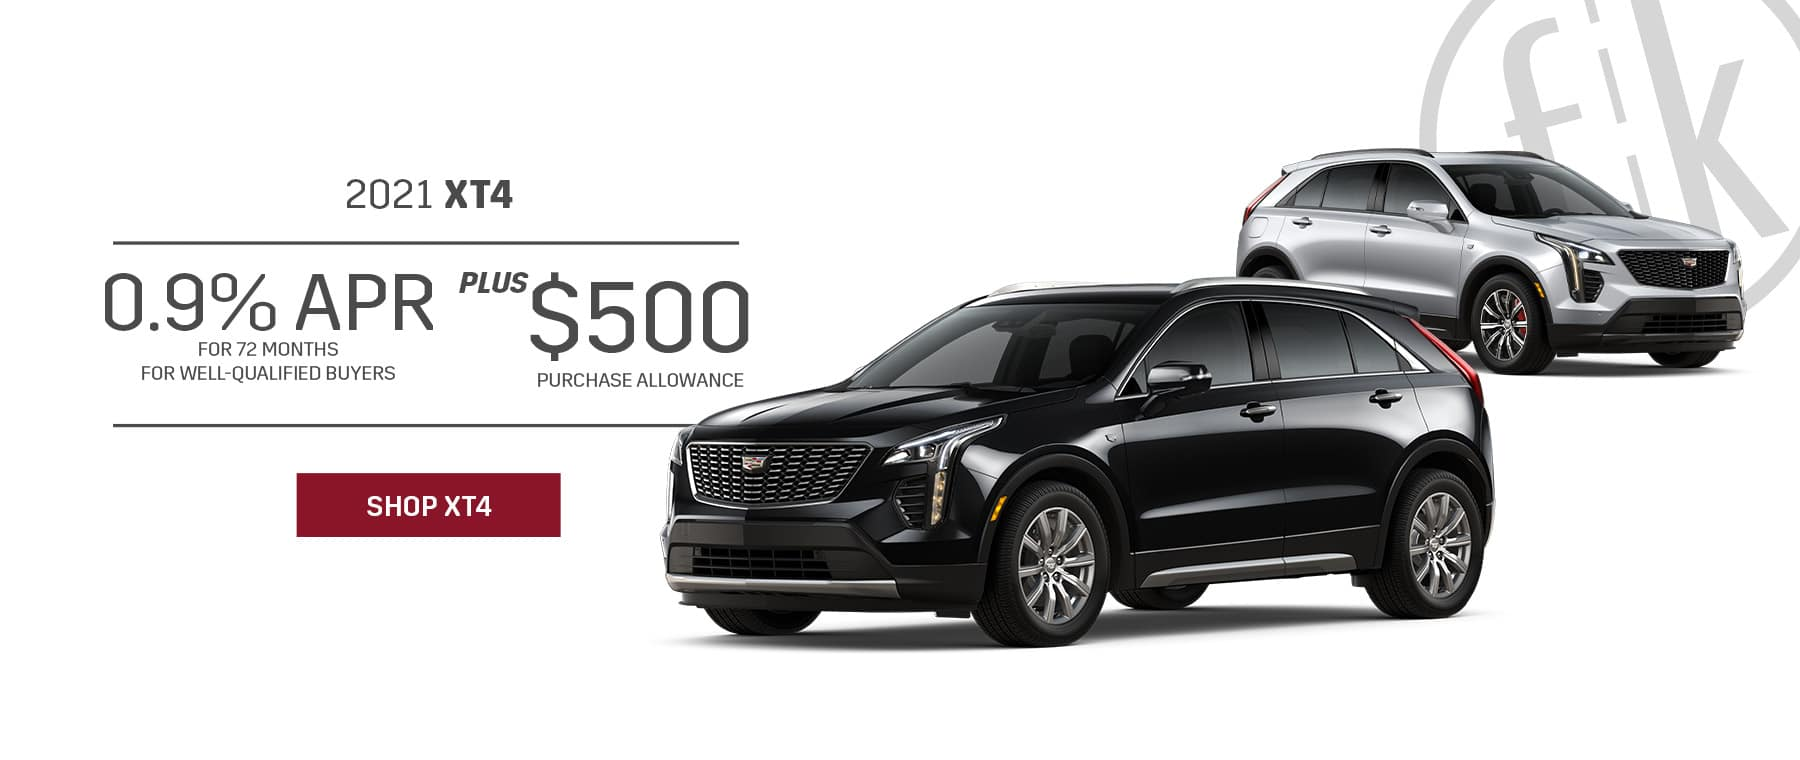 2021 XT4 0.9% for 72 mos PLUS $500 Purchase Allowance